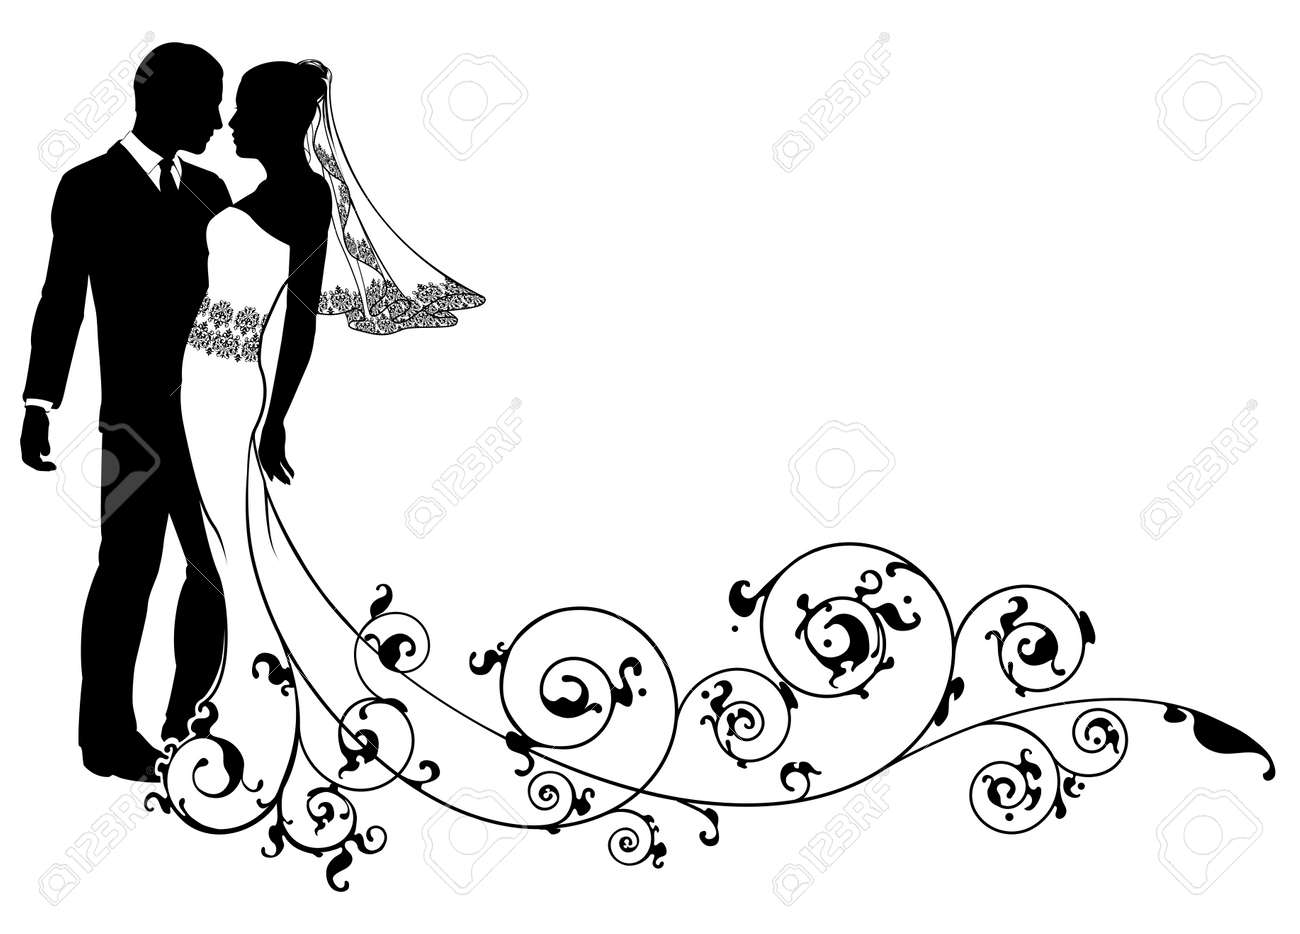 A bride and groom dancing or about to kiss on their wedding a bride and groom dancing or about to kiss on their wedding day with floral swirls junglespirit Images